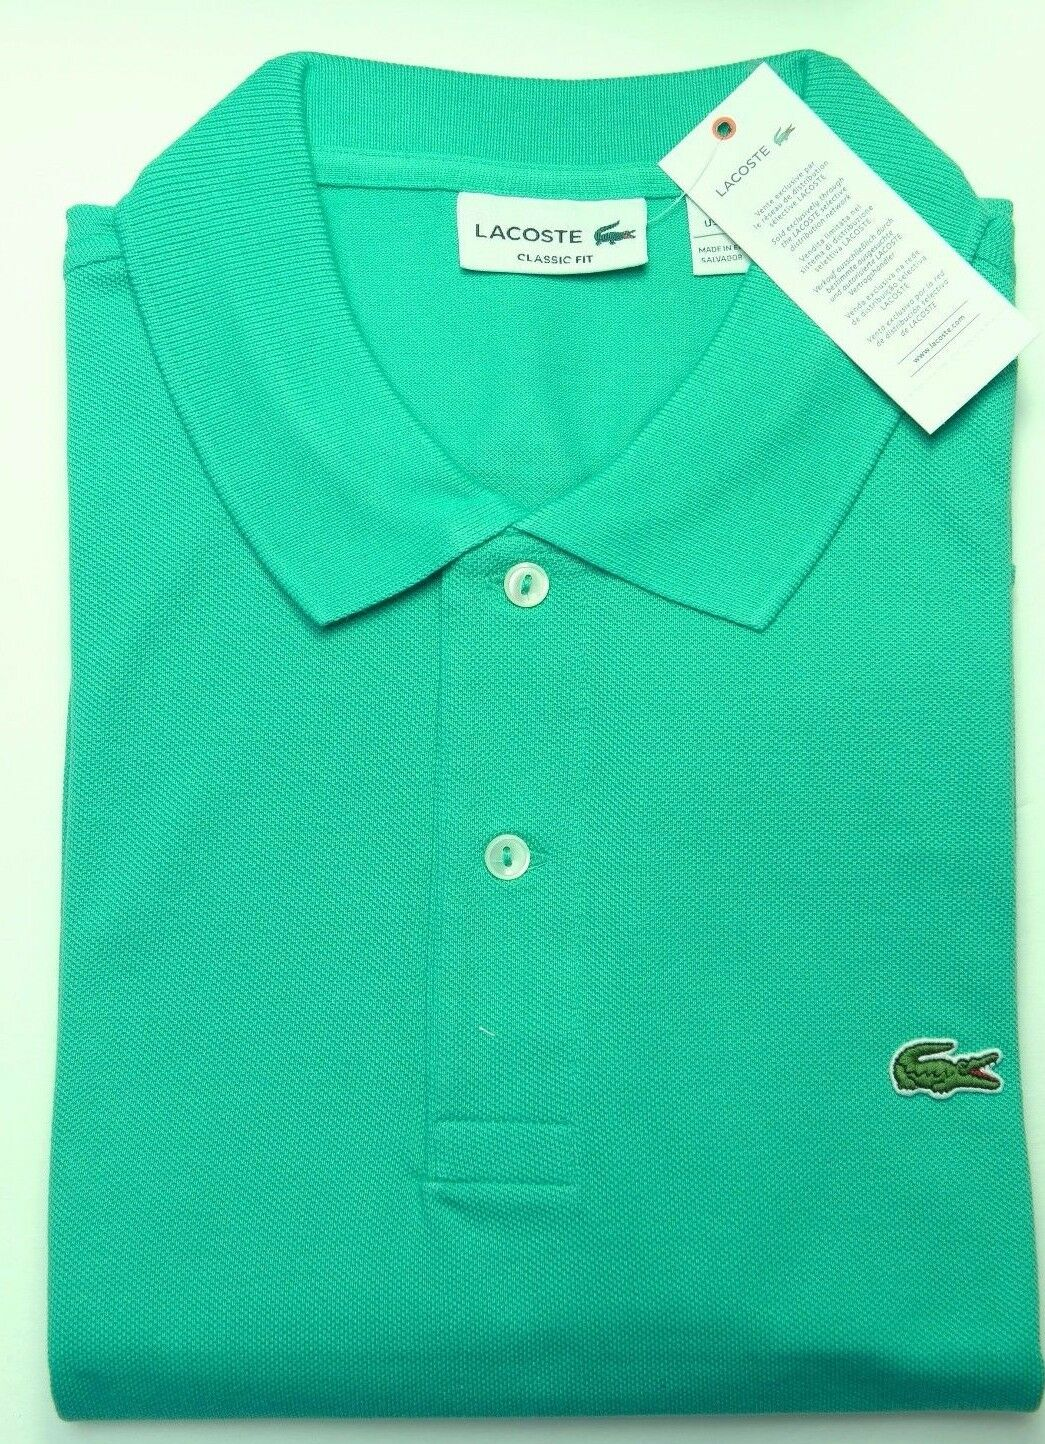 SALE Lacoste L1212 Men's Classic Fit Olivine Cotton Polo Shirt NWT 2XL